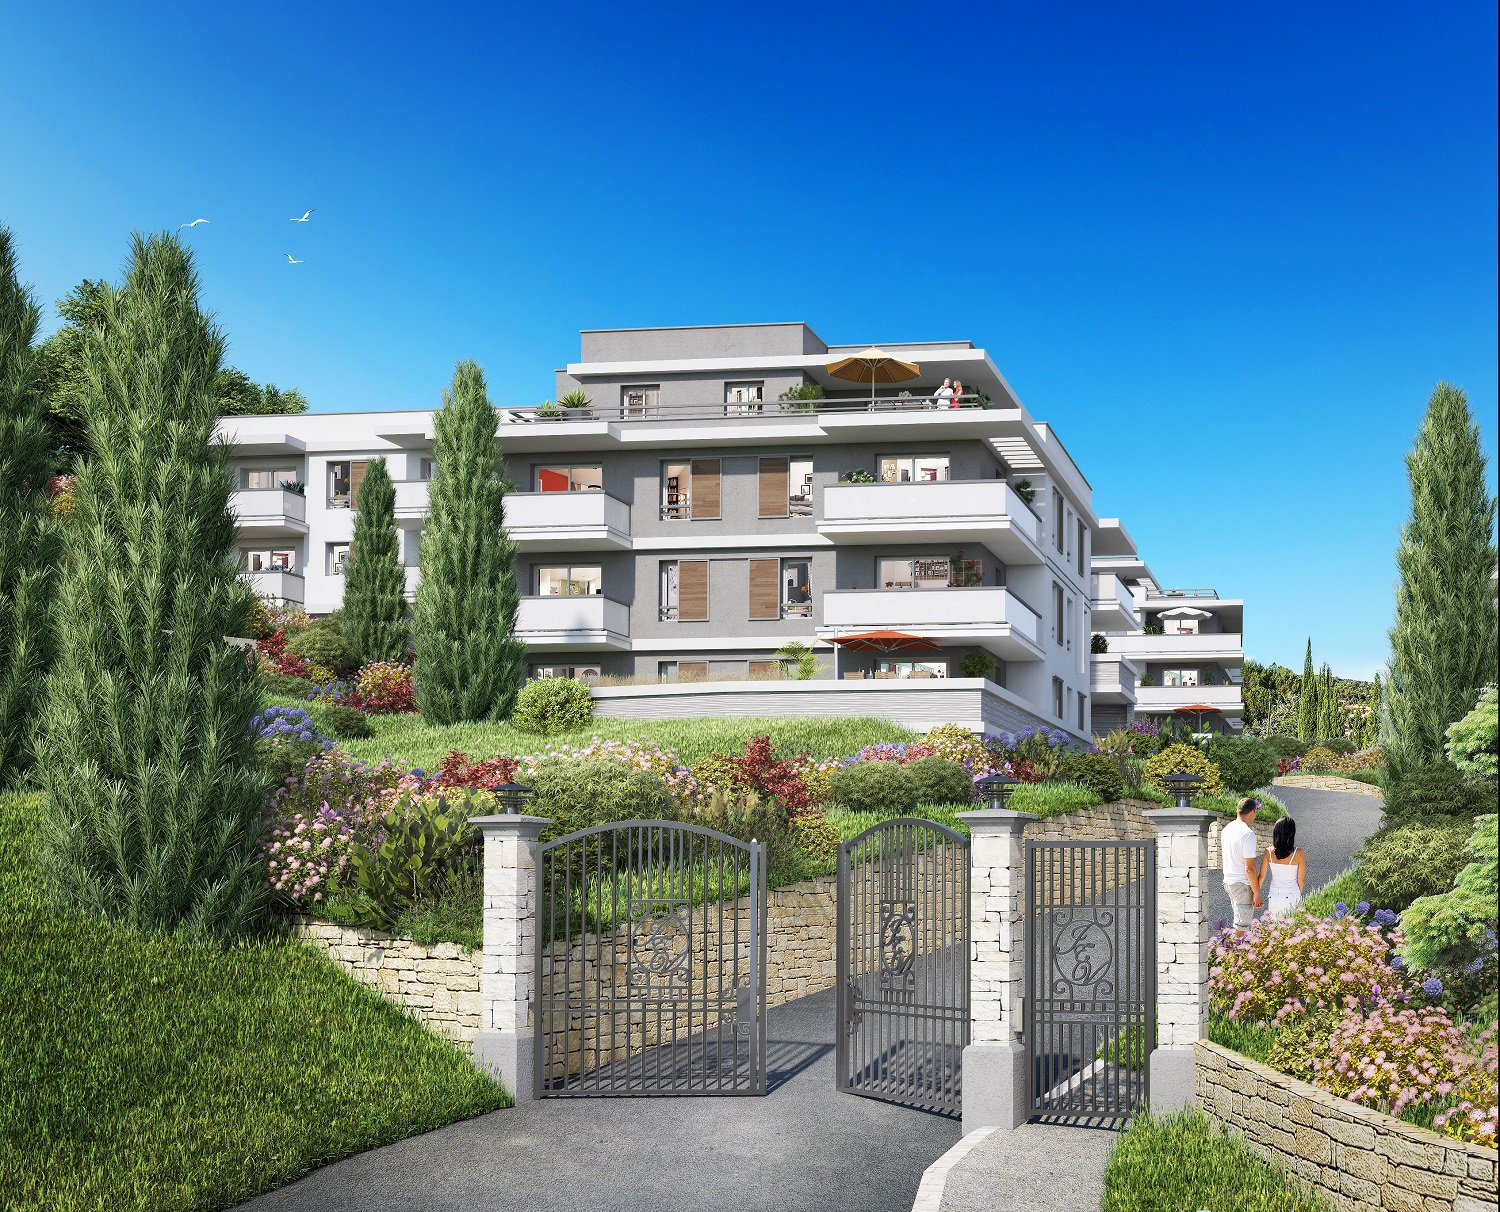 MOUGINS - French Riviera - 3 bed Apartment with large terrace - swimming pool